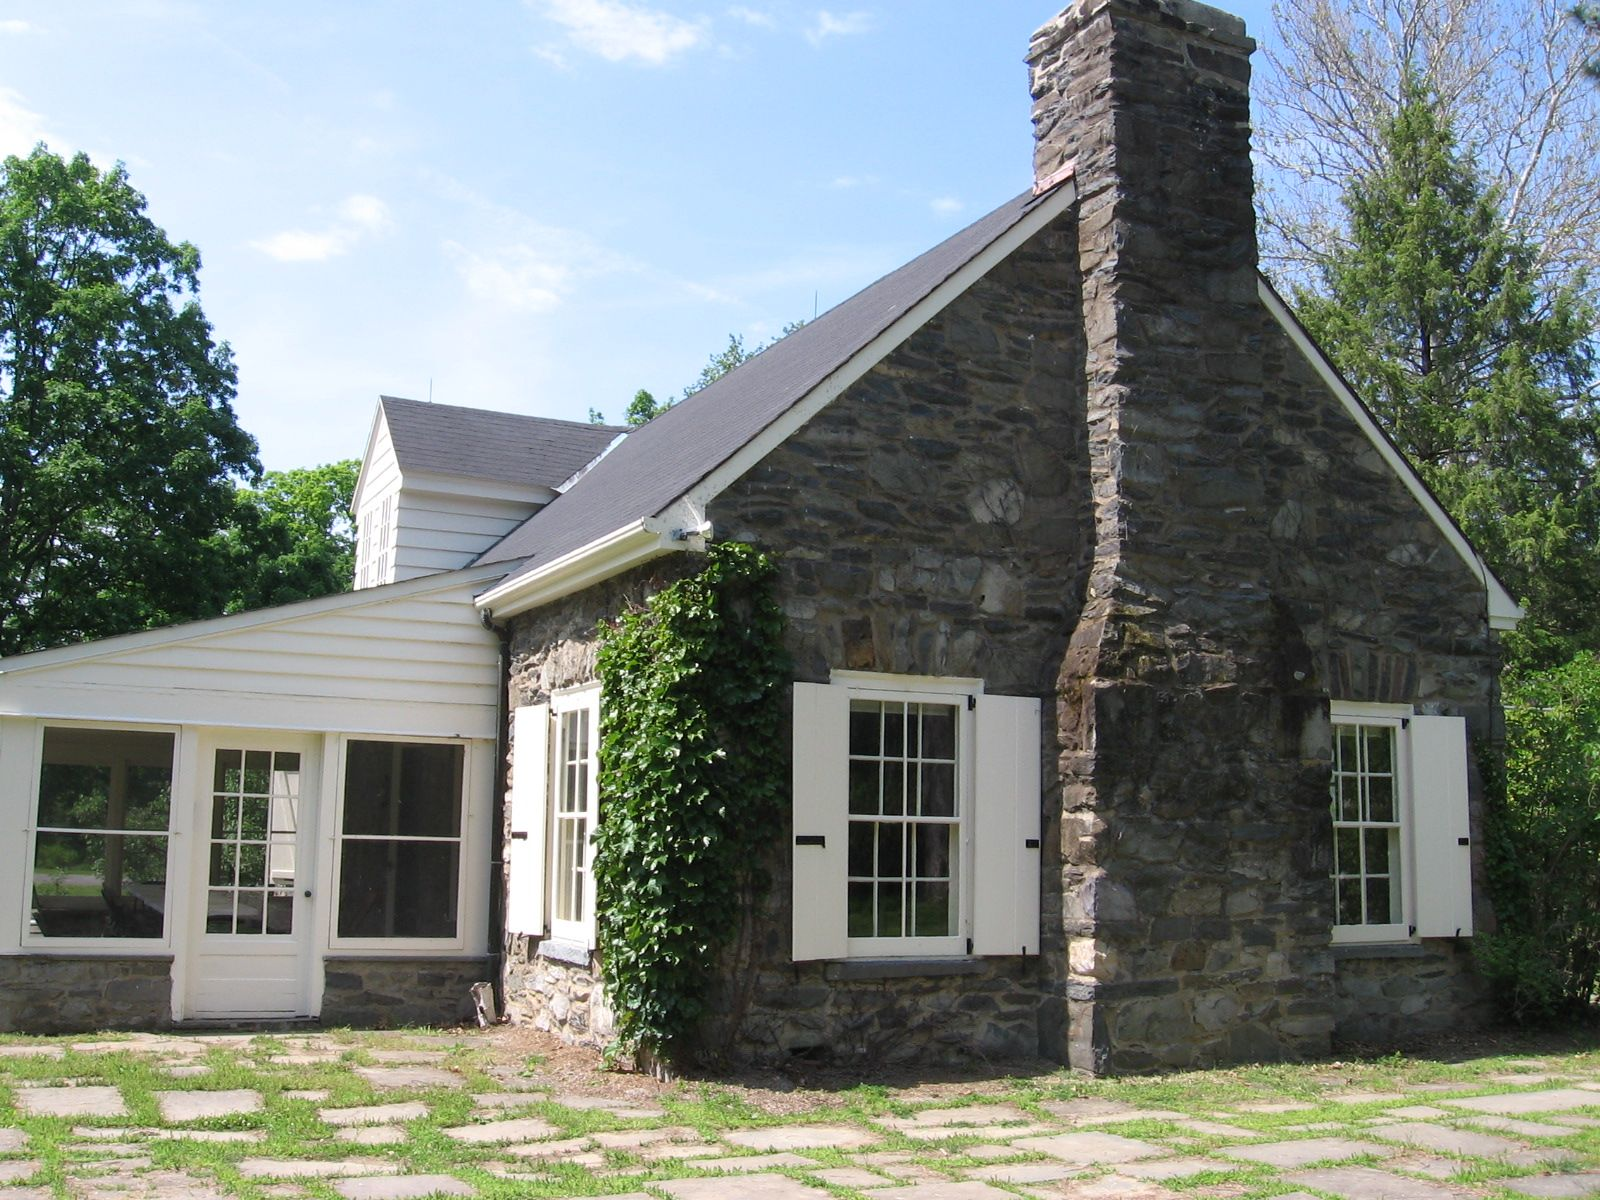 Modern Stone Cottage love the white trim and shutters against the gray stone   charming